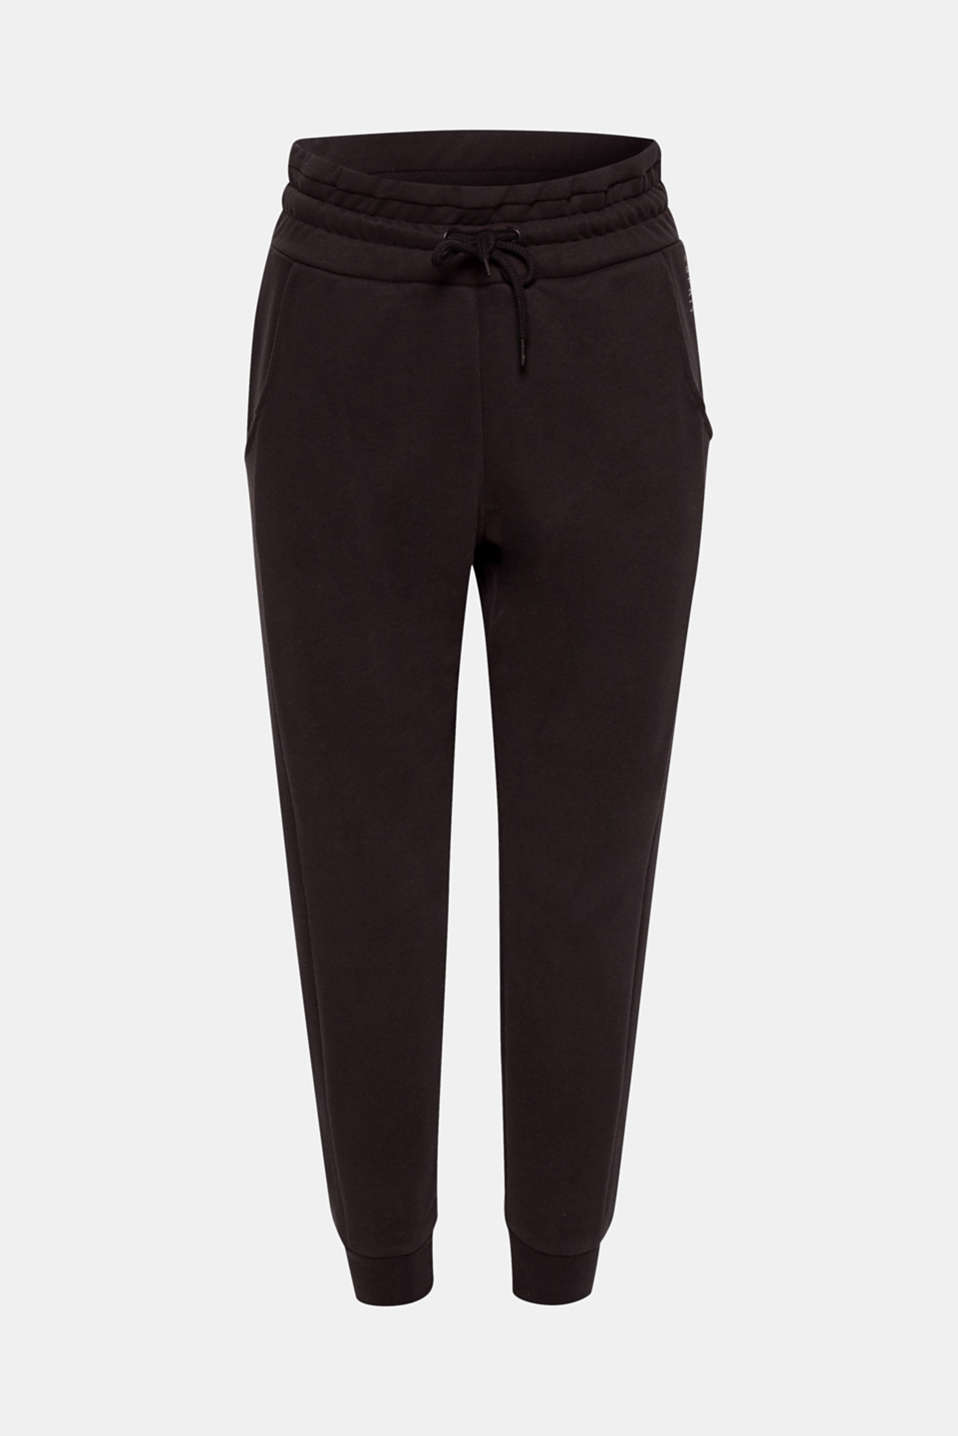 We love sports! These tracksuit bottoms in soft, snug jersey are great for both the gym and the way there.